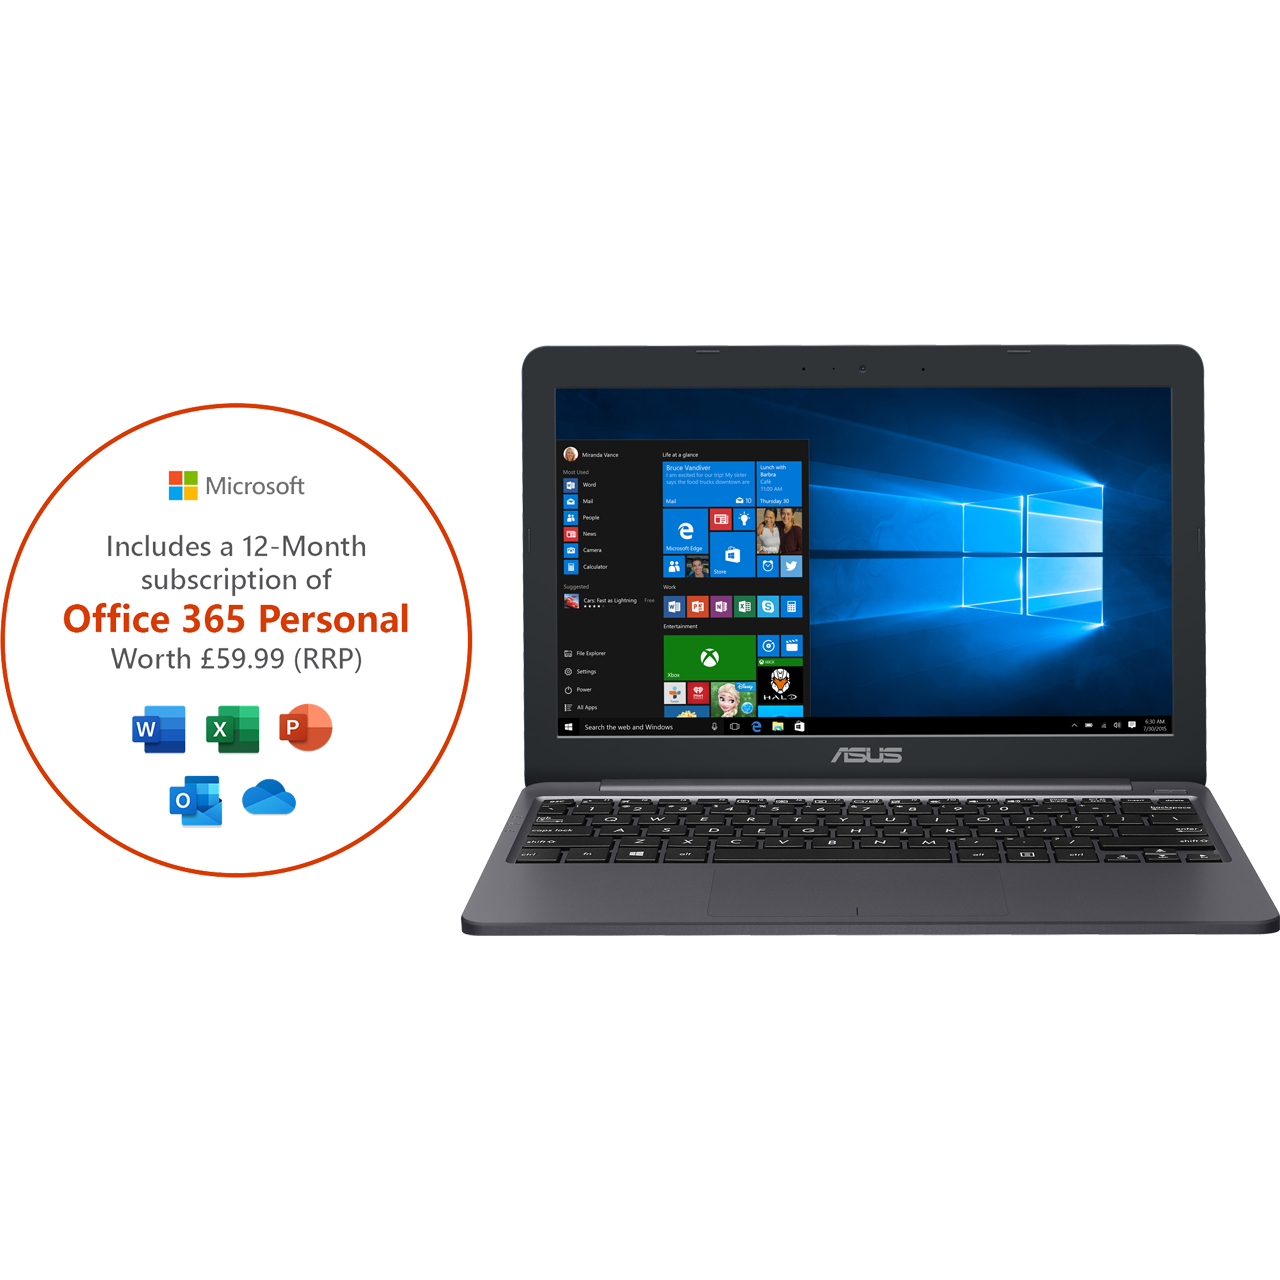 Details about Asus E203 11 6 Laptop 64GB Intel® Celeron® Includes Office  365 Personal 1-year